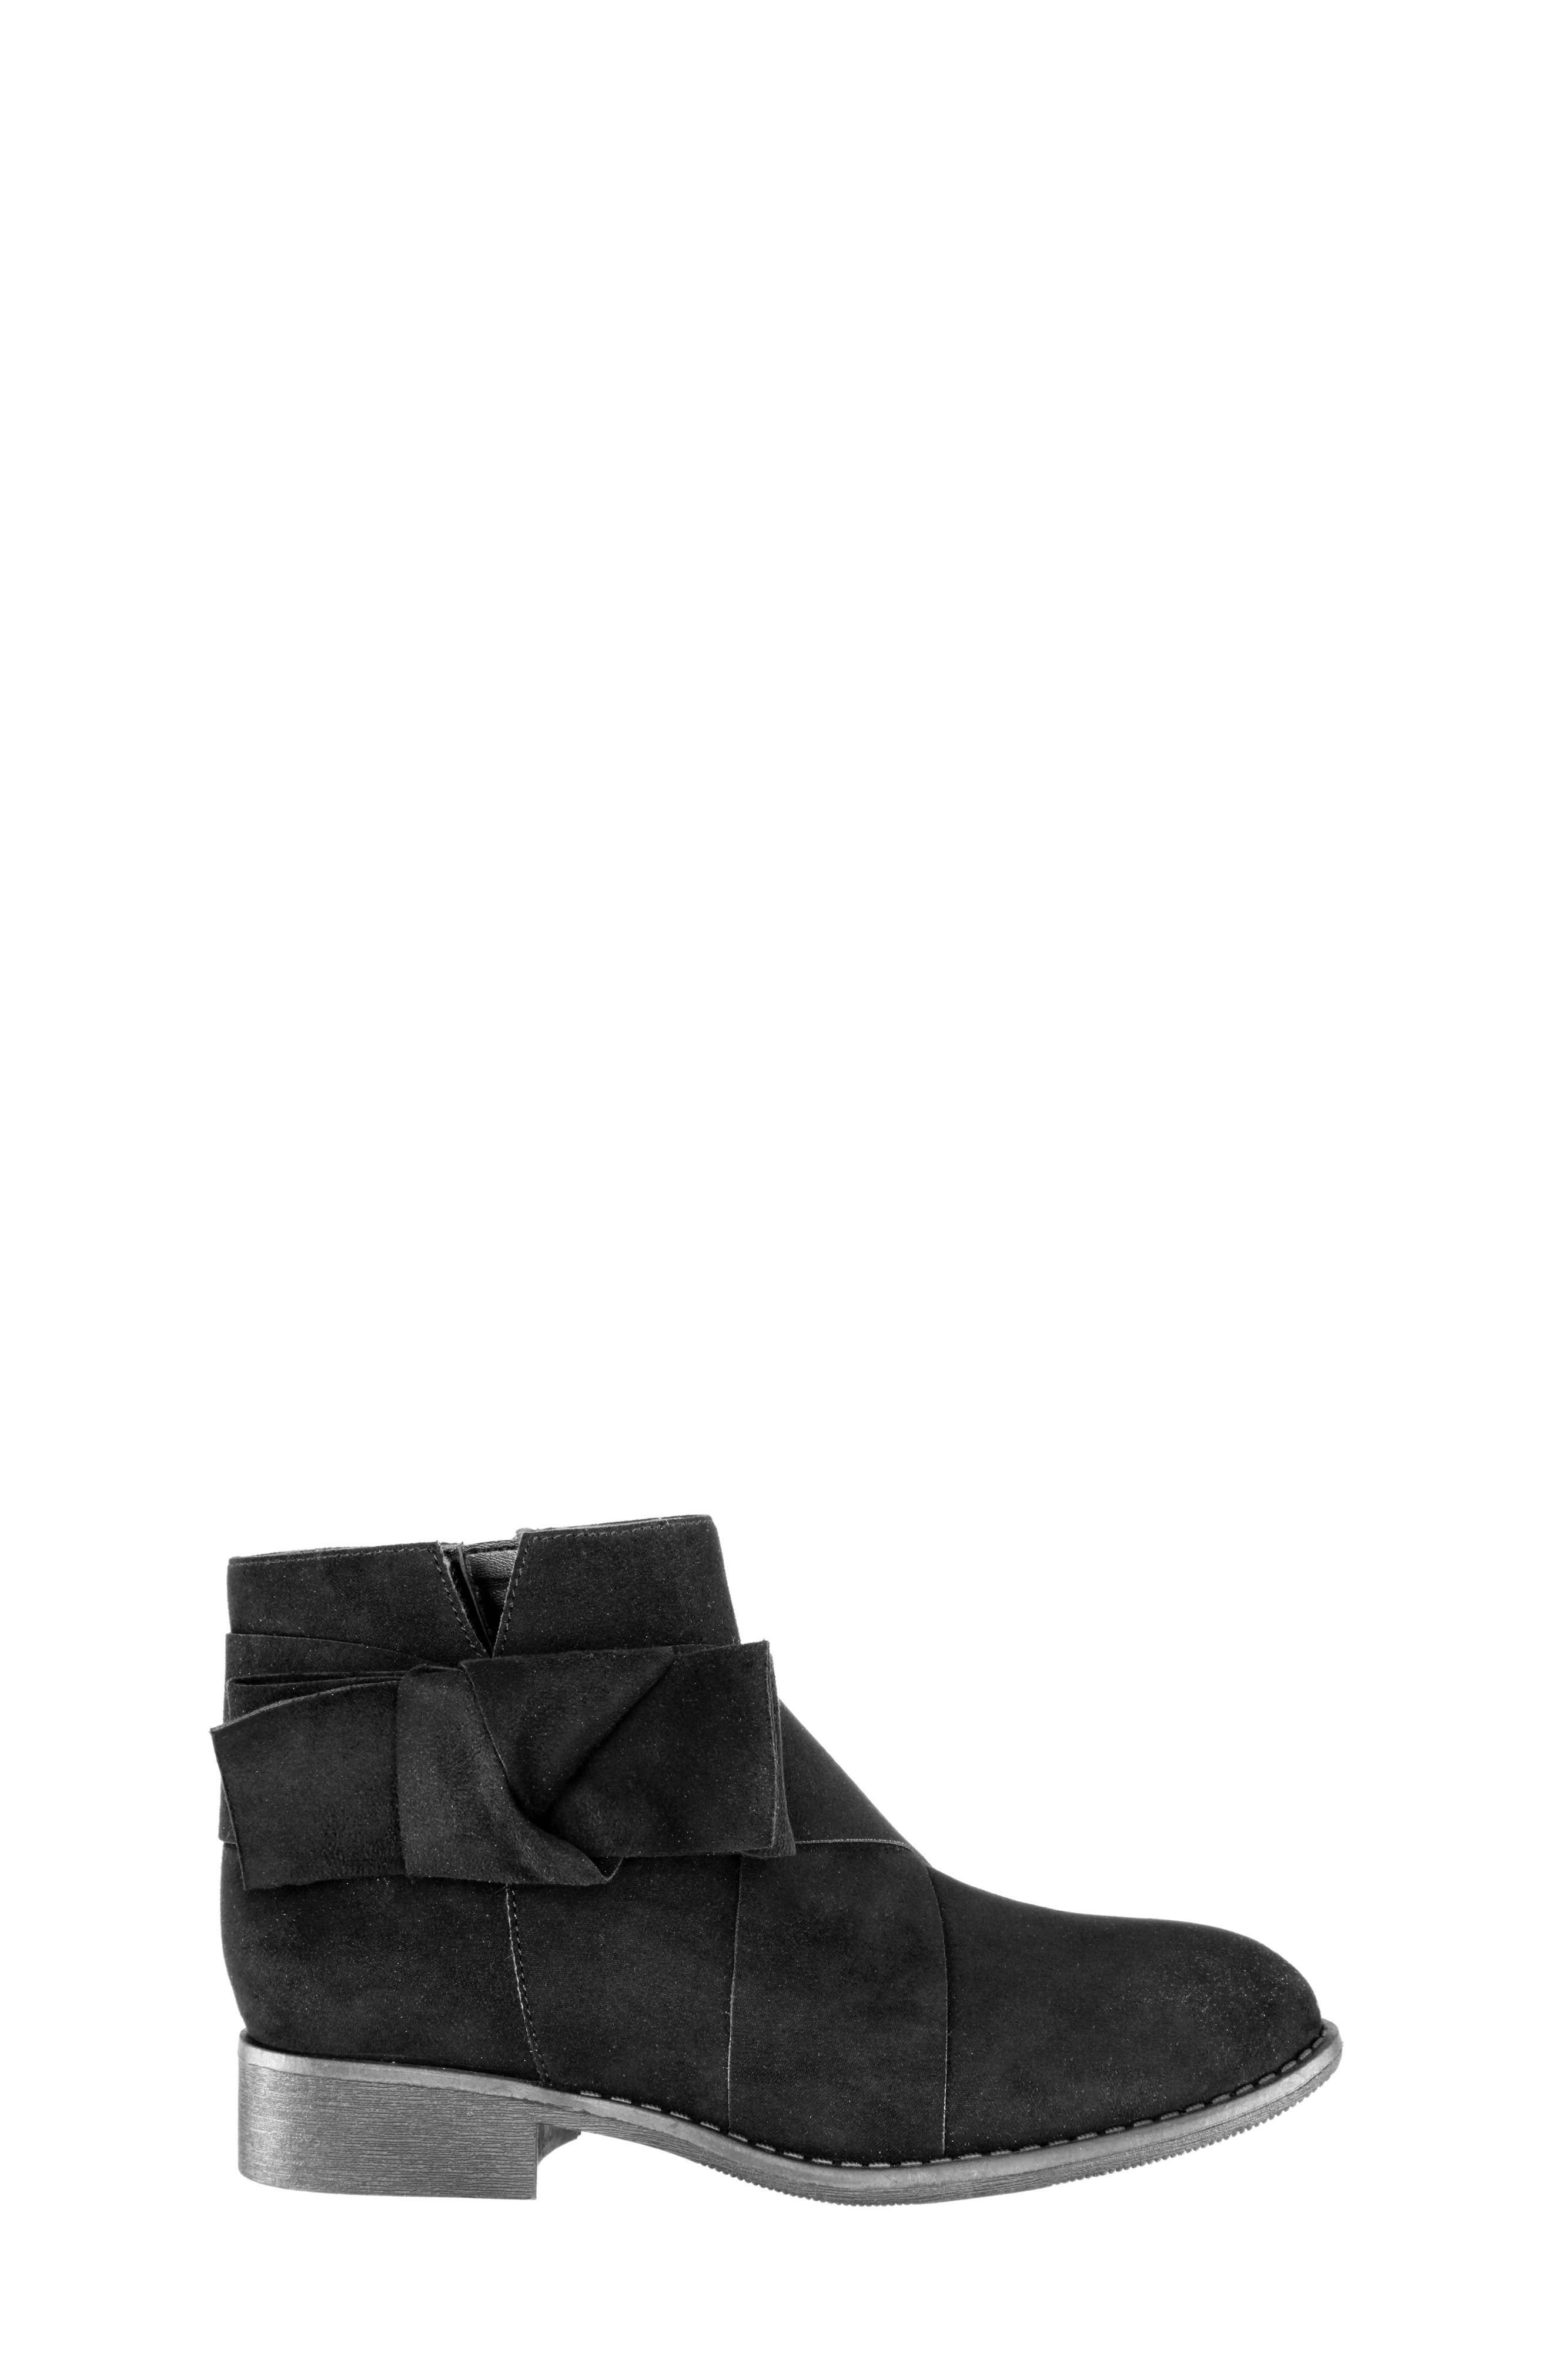 Dollee Bootie,                             Alternate thumbnail 3, color,                             BLACK MICRO SUEDE